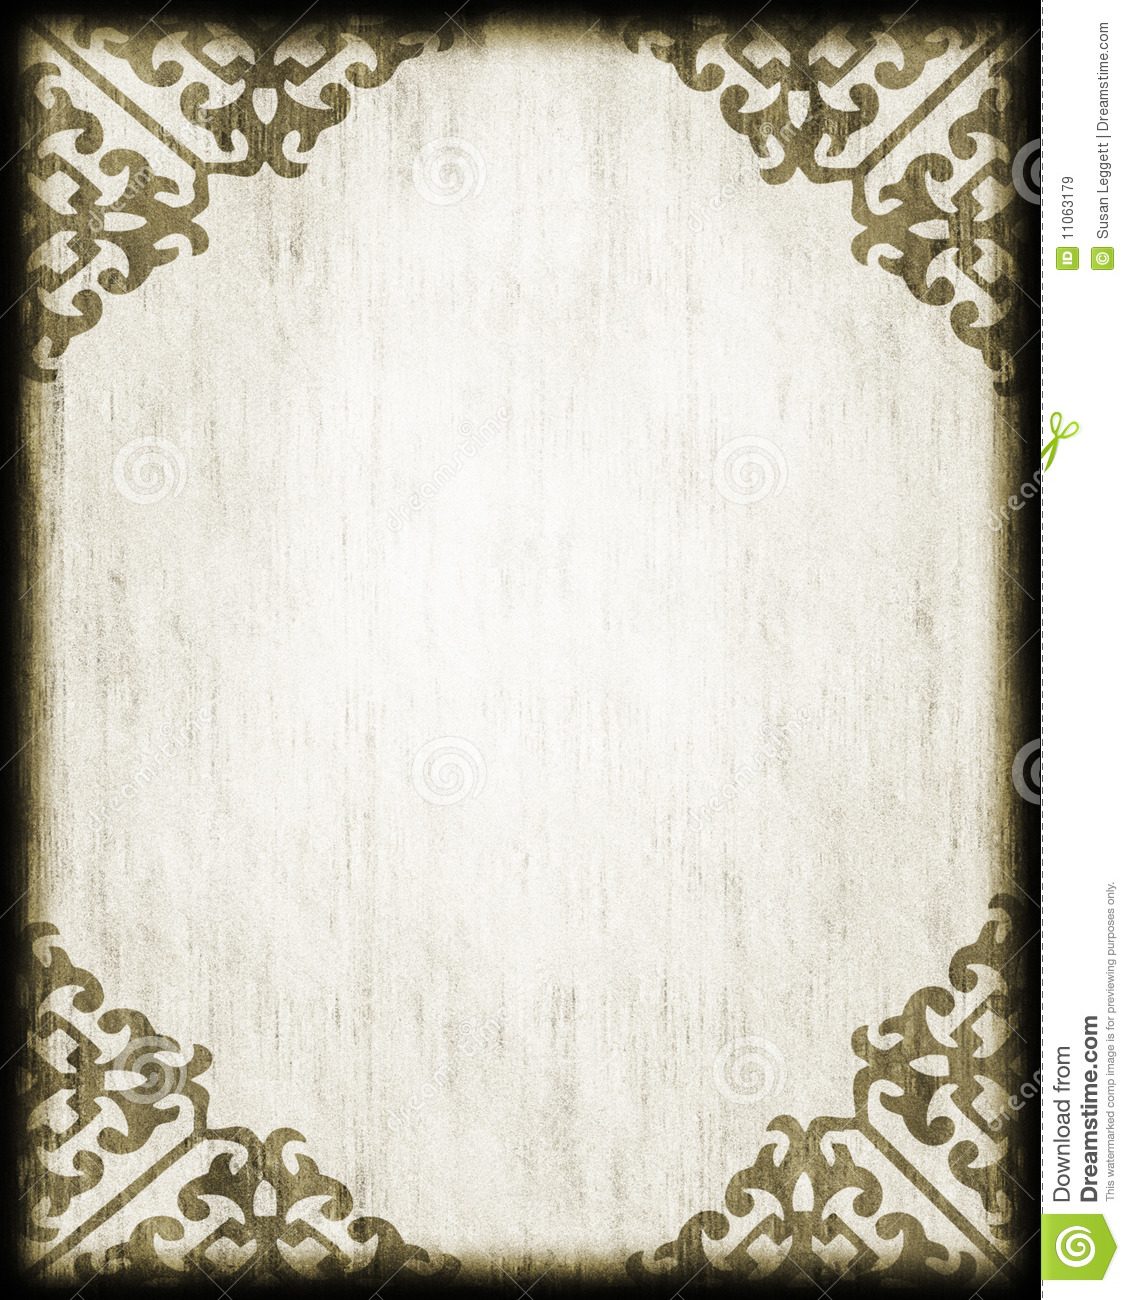 Antique Style Paper/ Lace Corners Royalty Free Stock Images ...